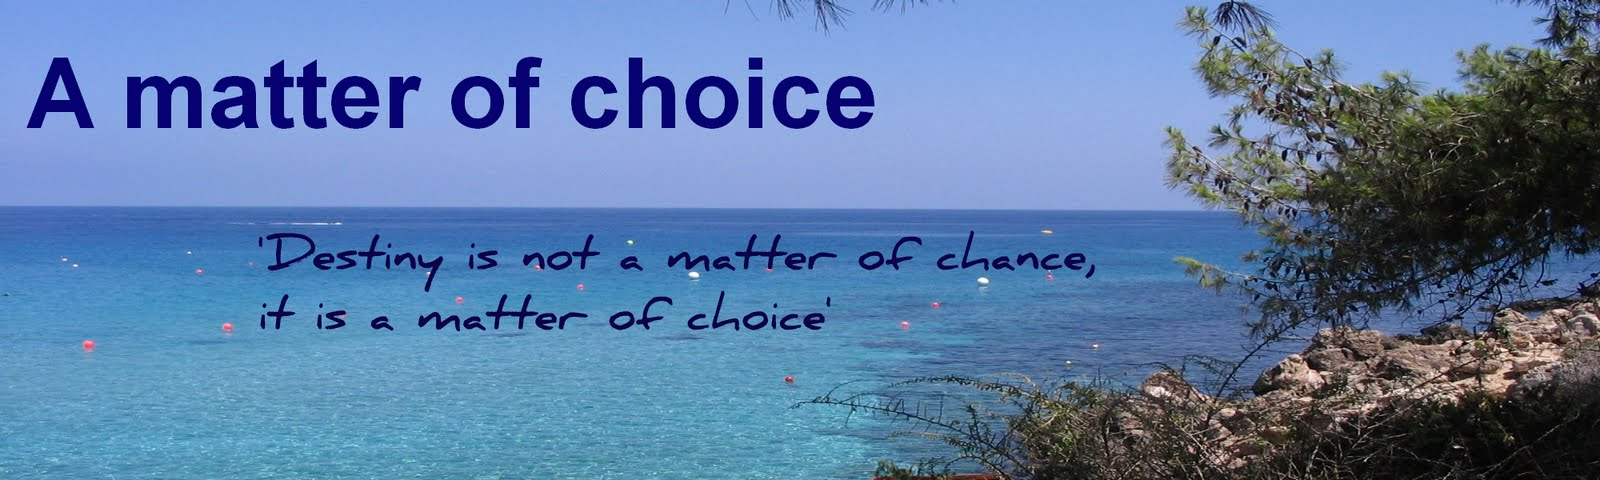 A matter of choice